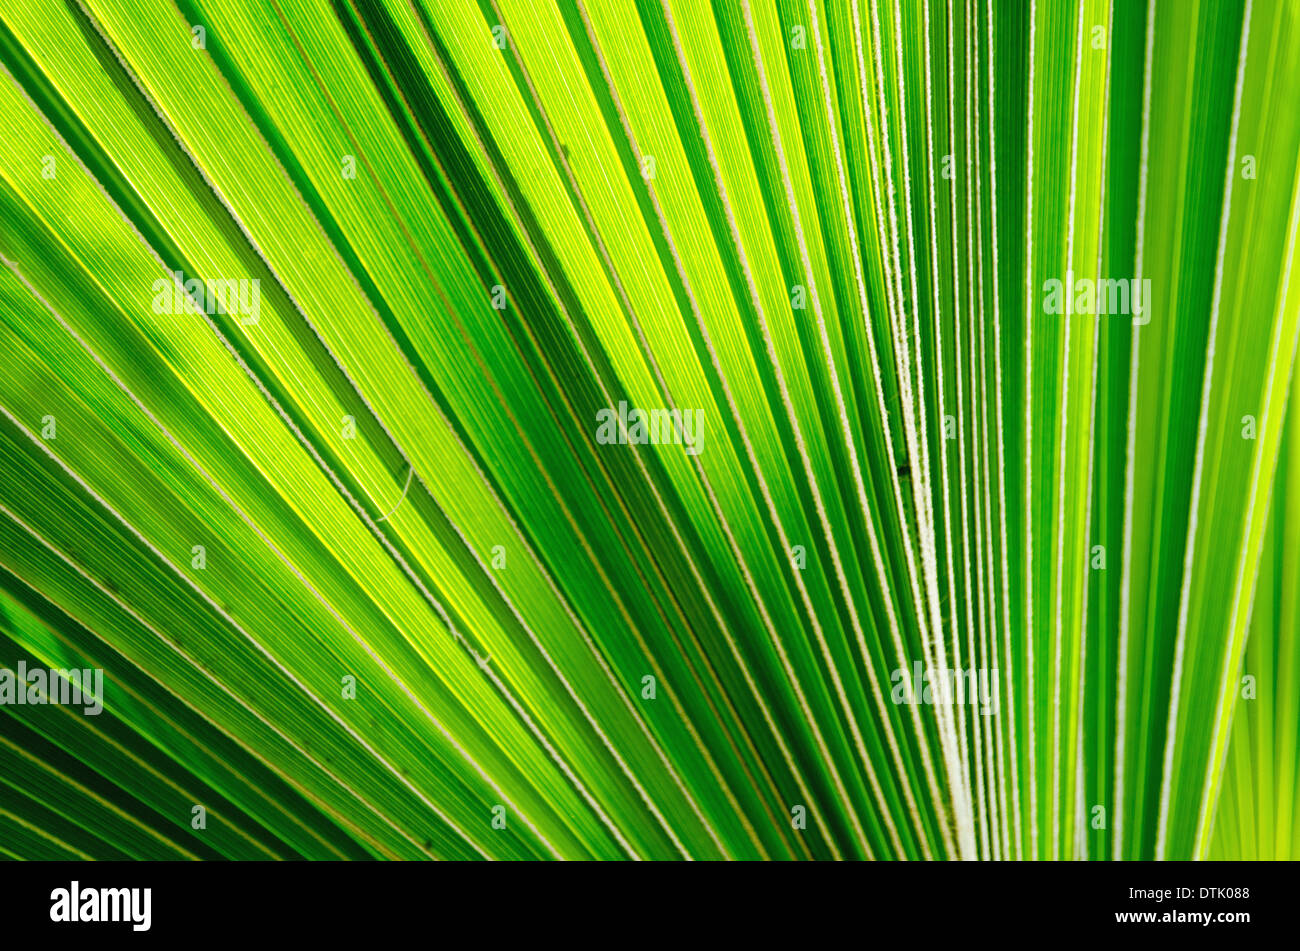 palm leaves in the botanical garden. - Stock Image